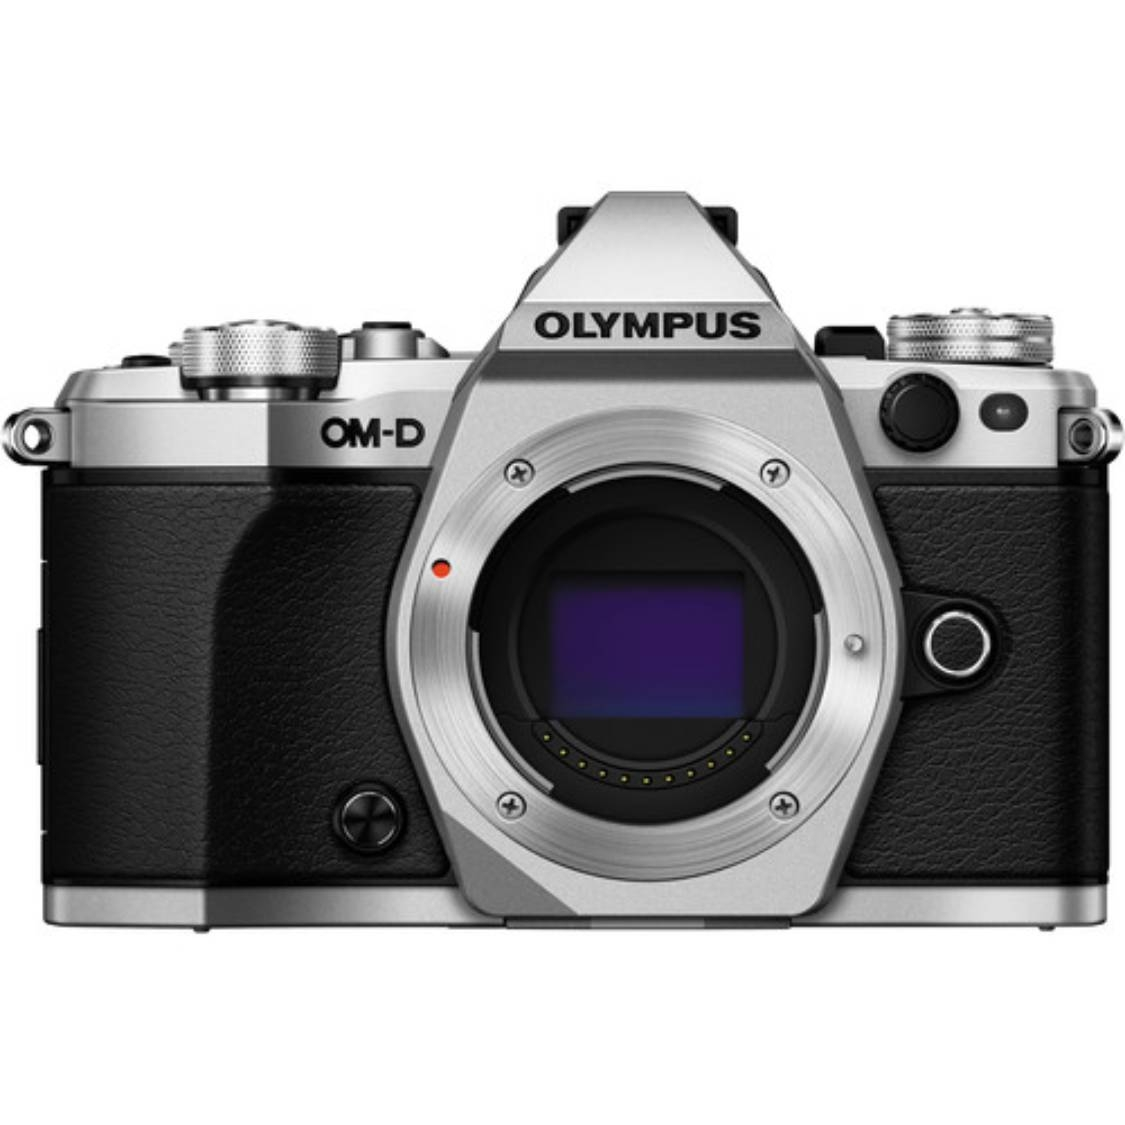 Olympus OM-D E-M5 Mark II Camera Body (silver) - Open Box